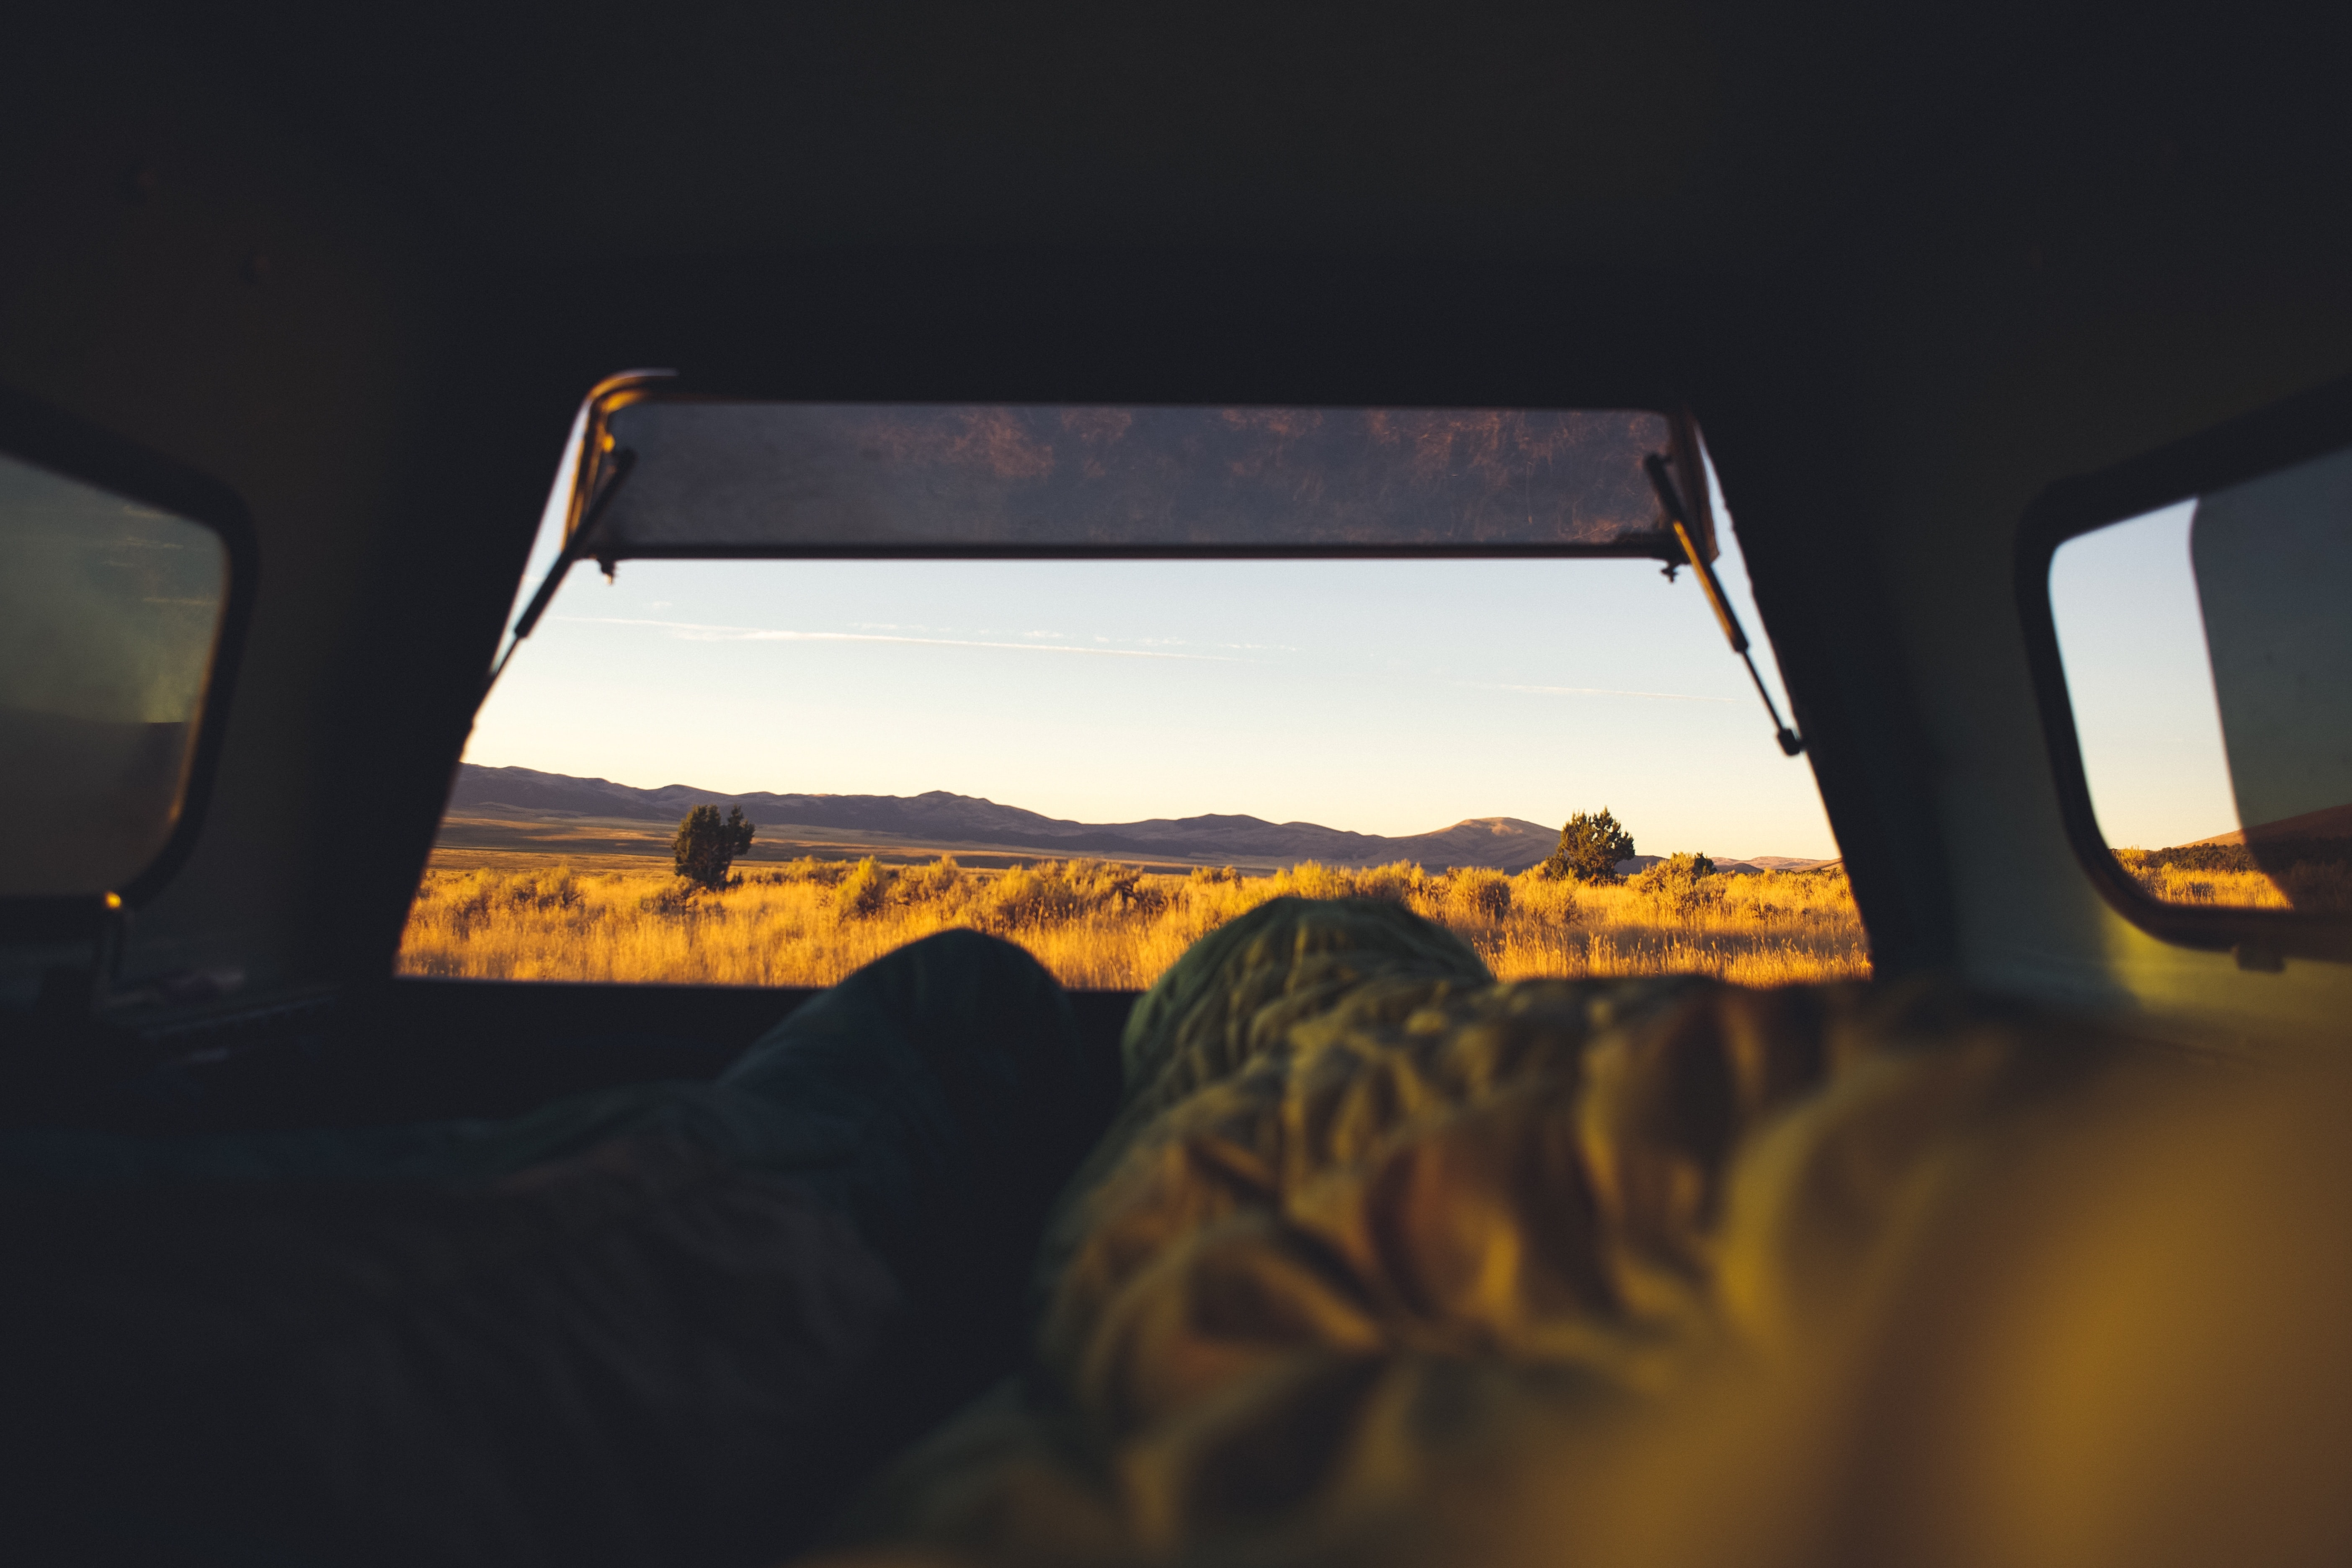 Two campers lying in the back of an off-road vehicle parked in the middle of the wilderness